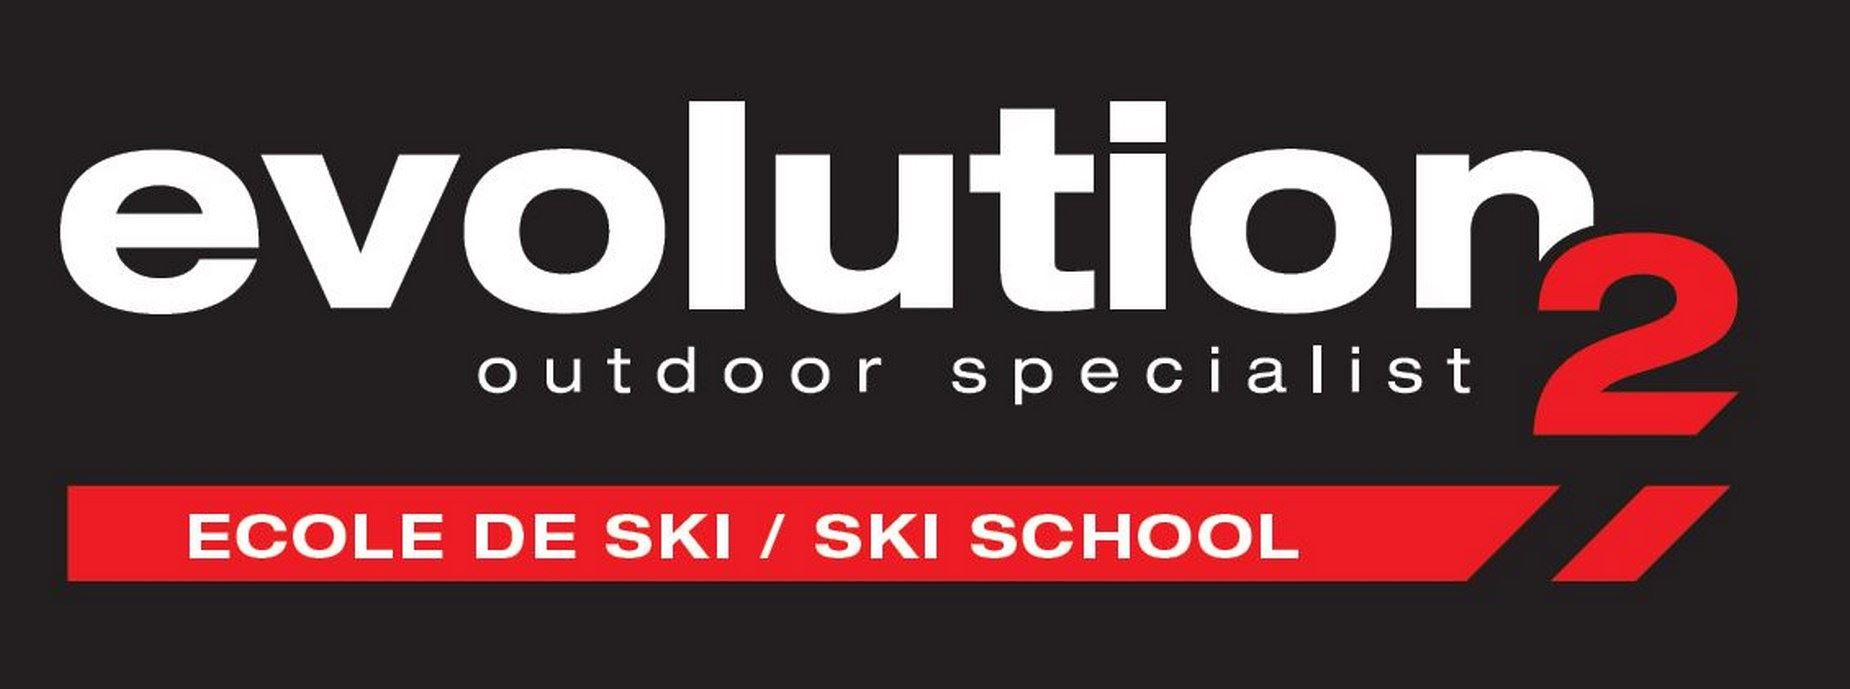 CHILDREN SKI TRAINING - SUPER YETI / JUNIOR ACADEMY - 5 OR 6 FULL DAYS